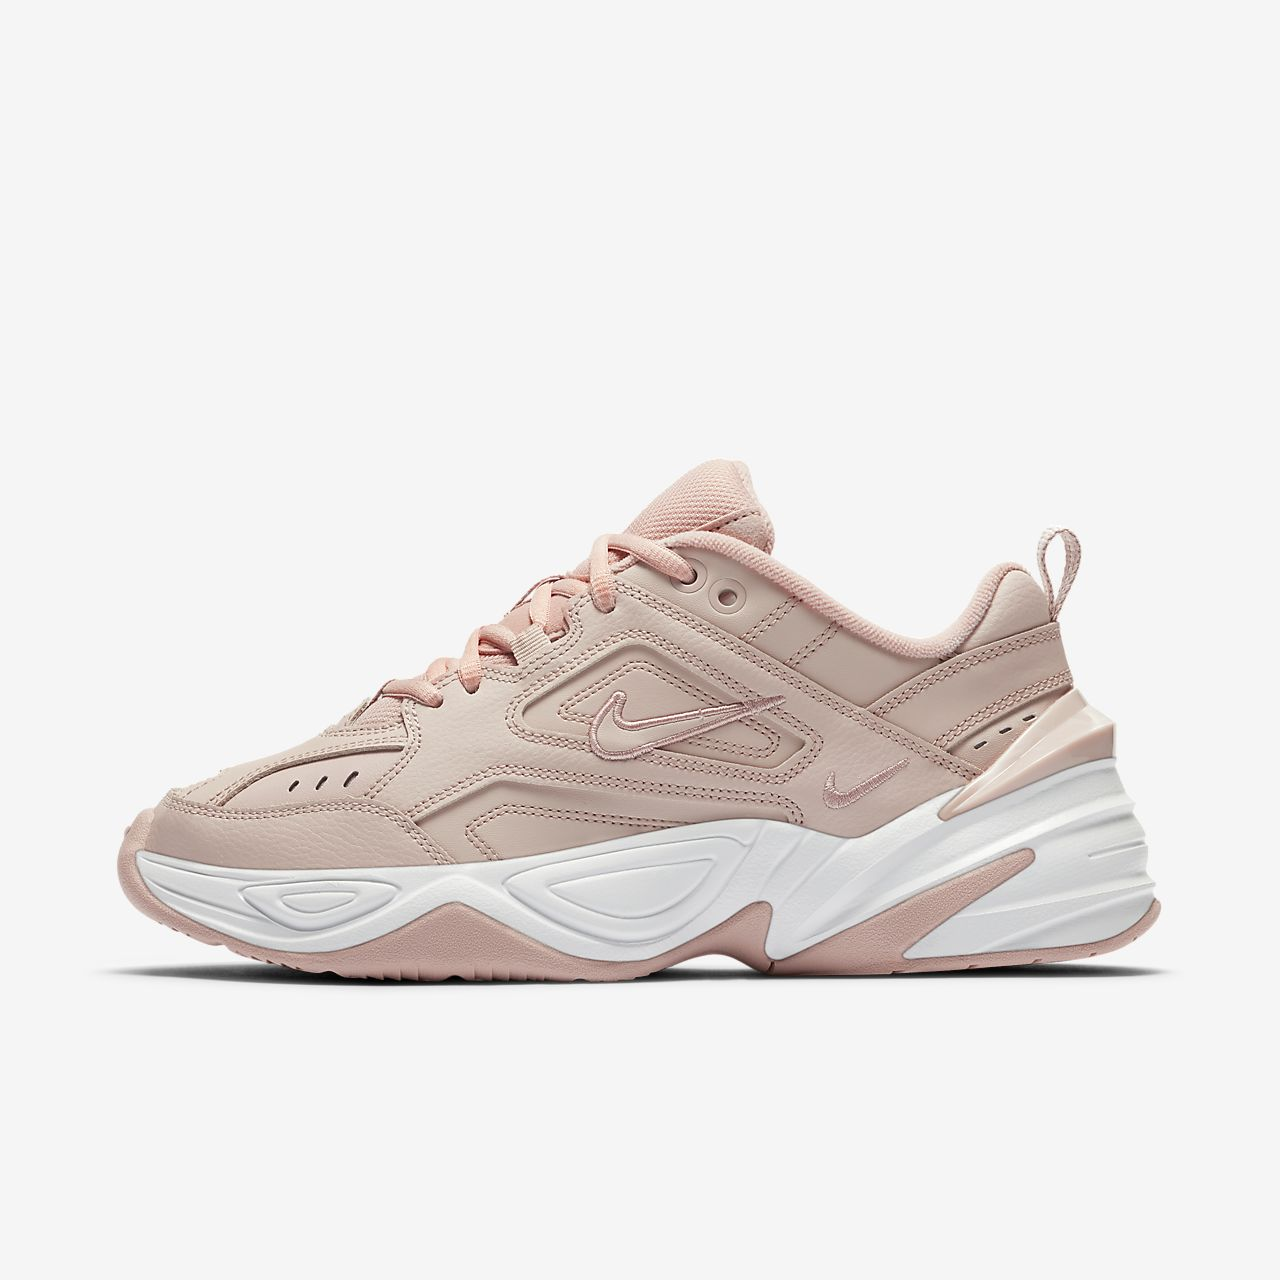 lower price with 6c1da bb364 Low Resolution Nike M2K Tekno Shoe Nike M2K Tekno Shoe